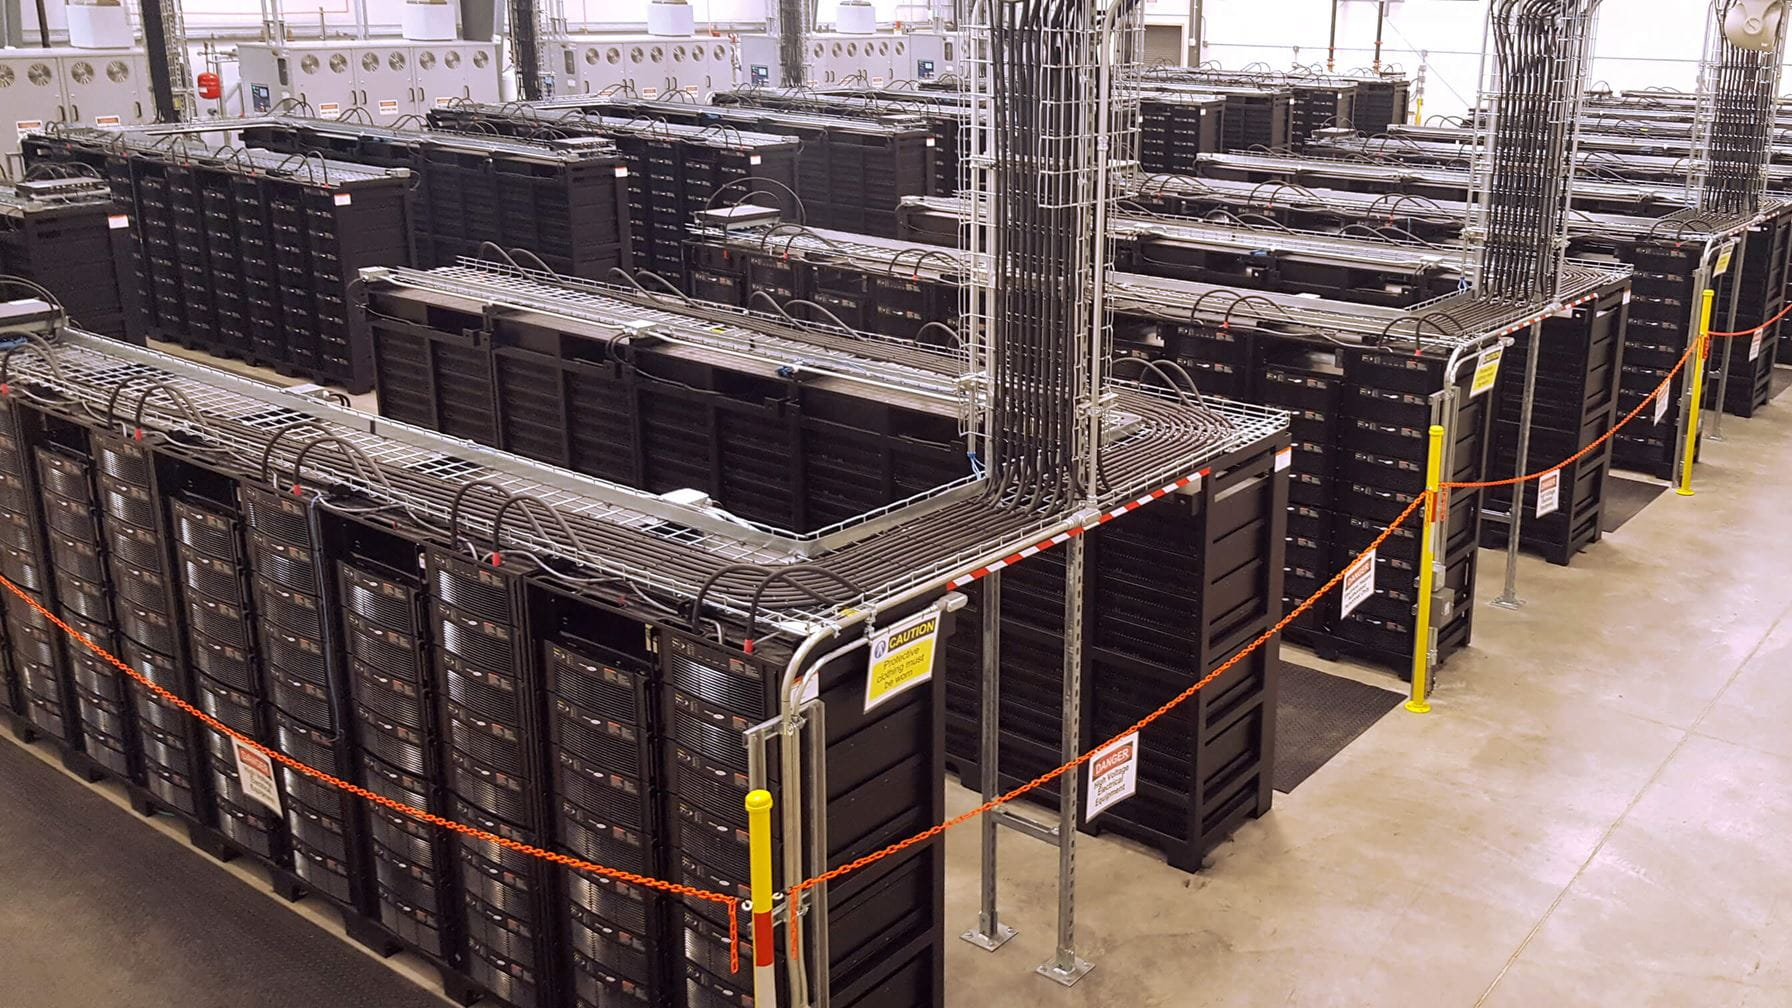 A hybrid storage solution for an electric power company in Texas